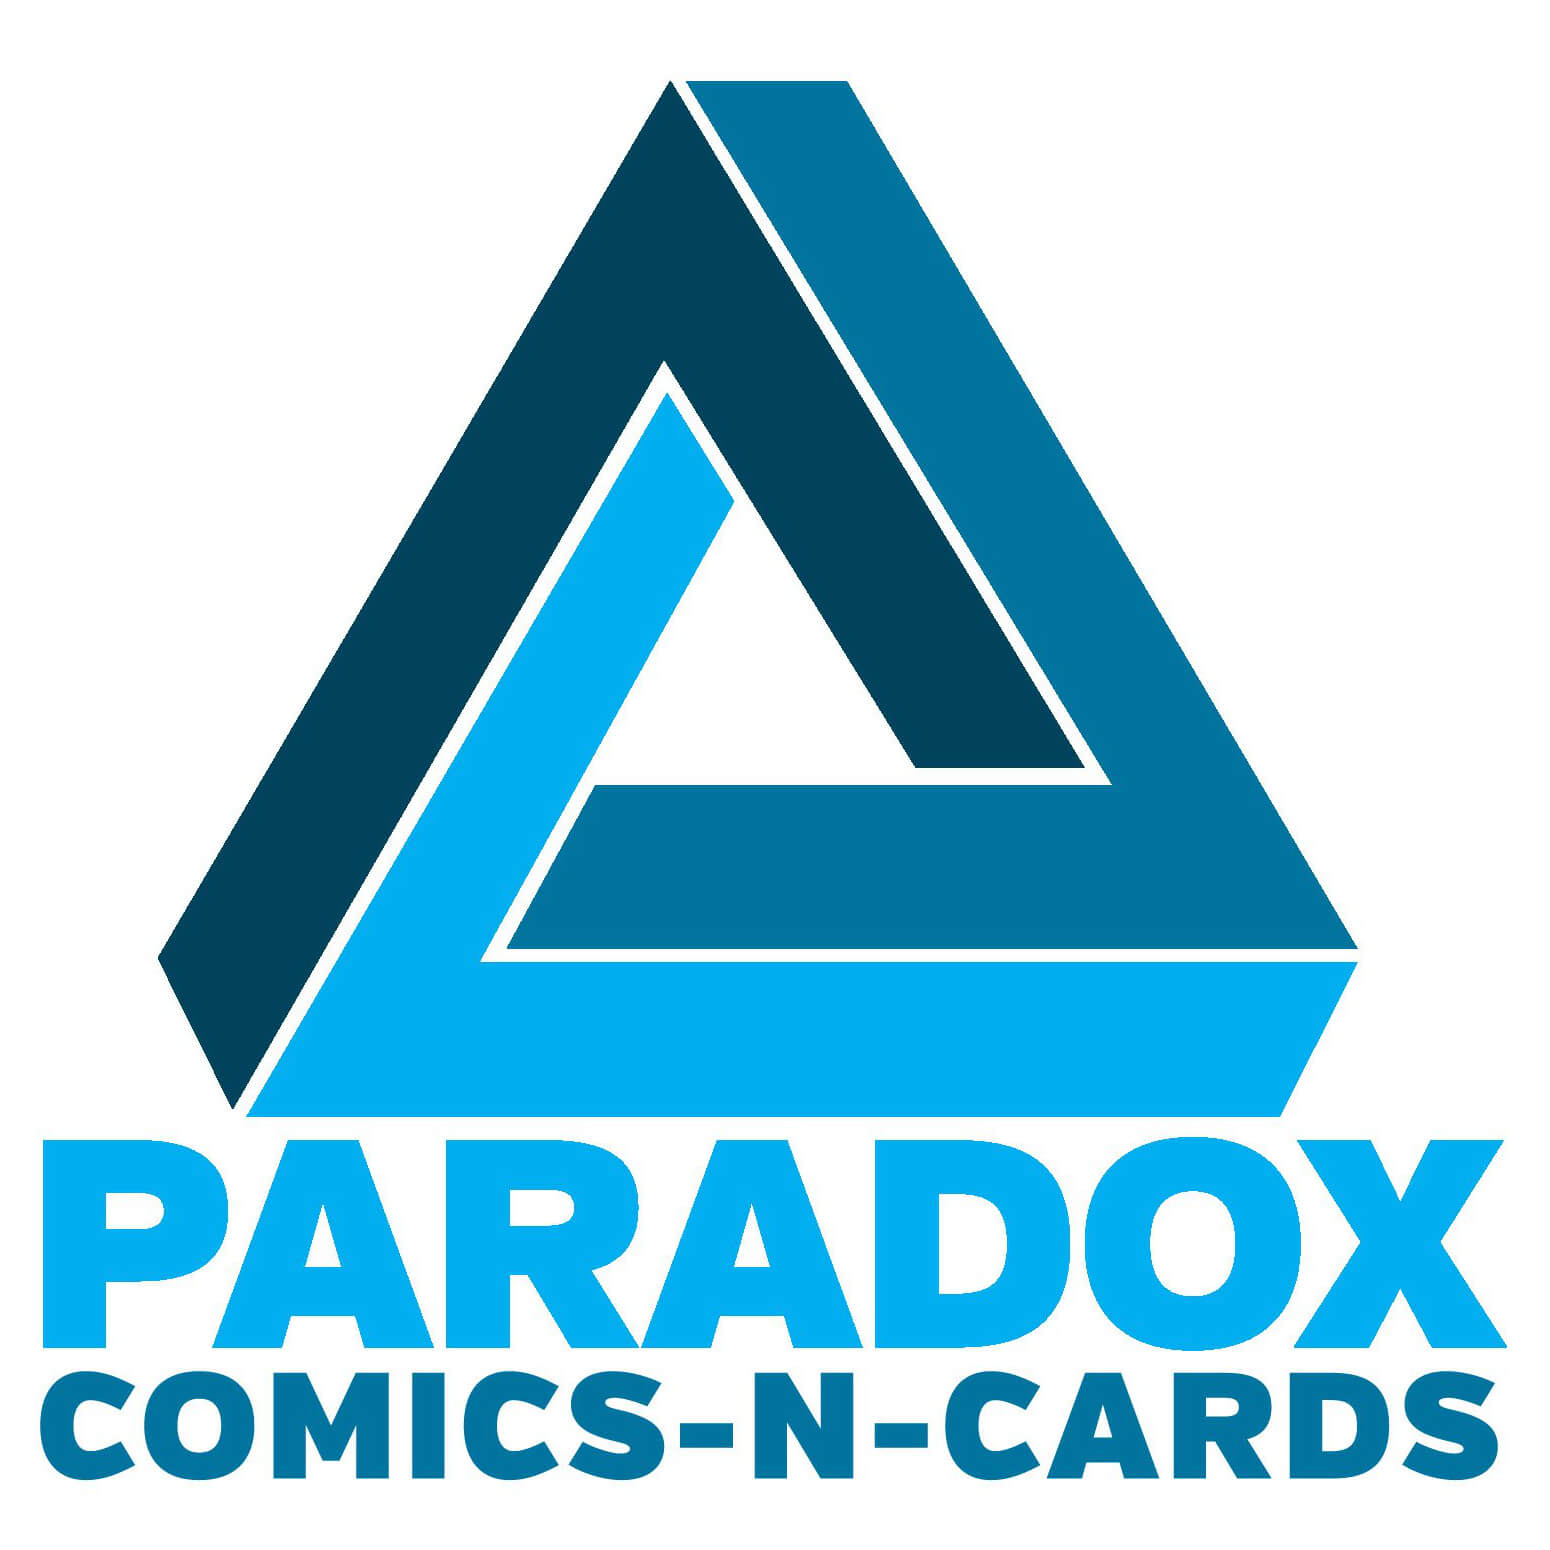 Paradox-just-Tri-Color-square